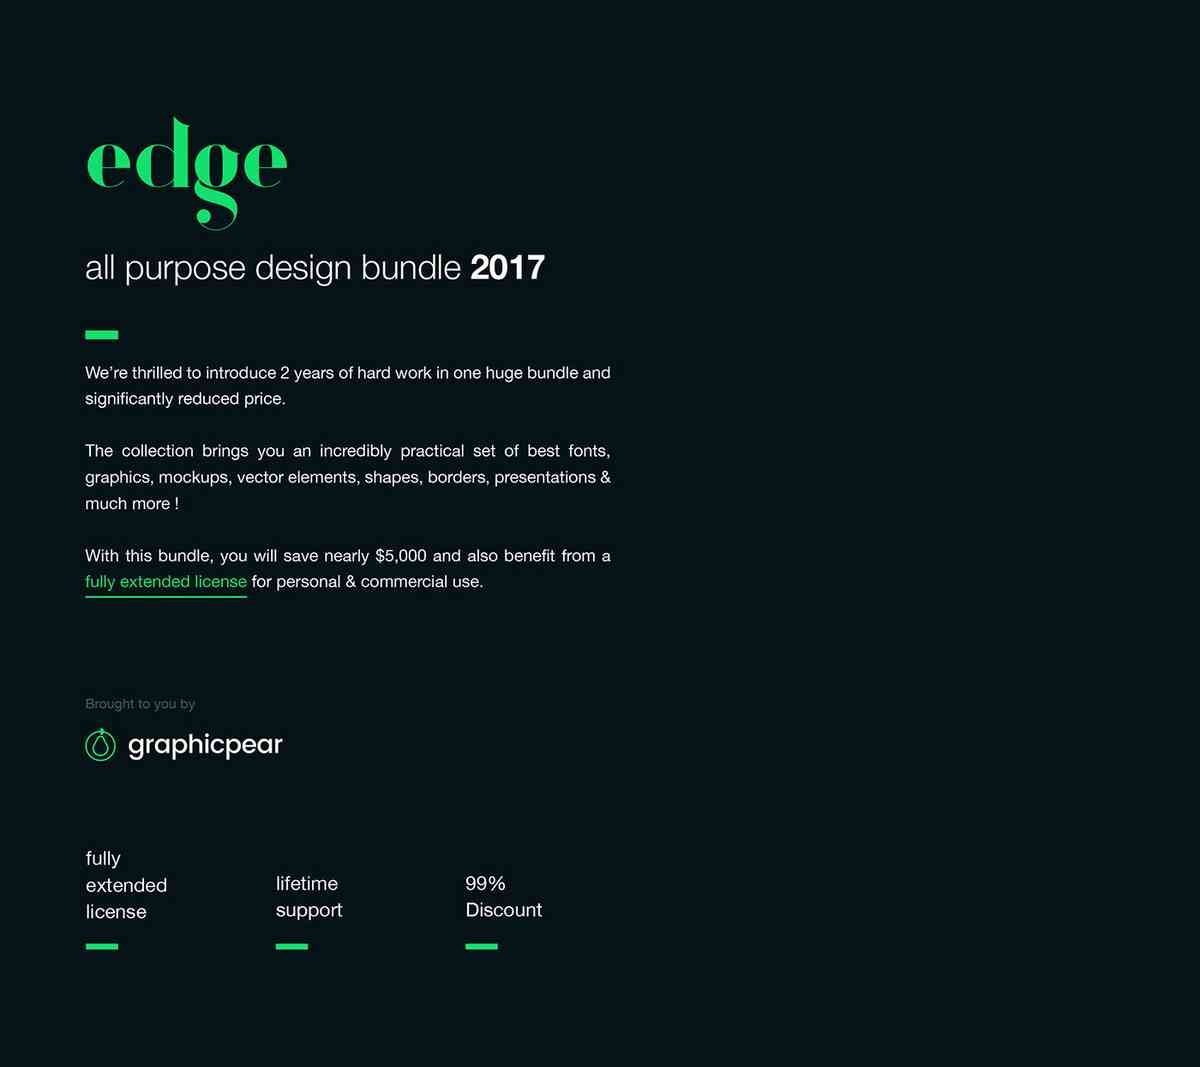 Edge - Ultimate Design Bundle on Behance